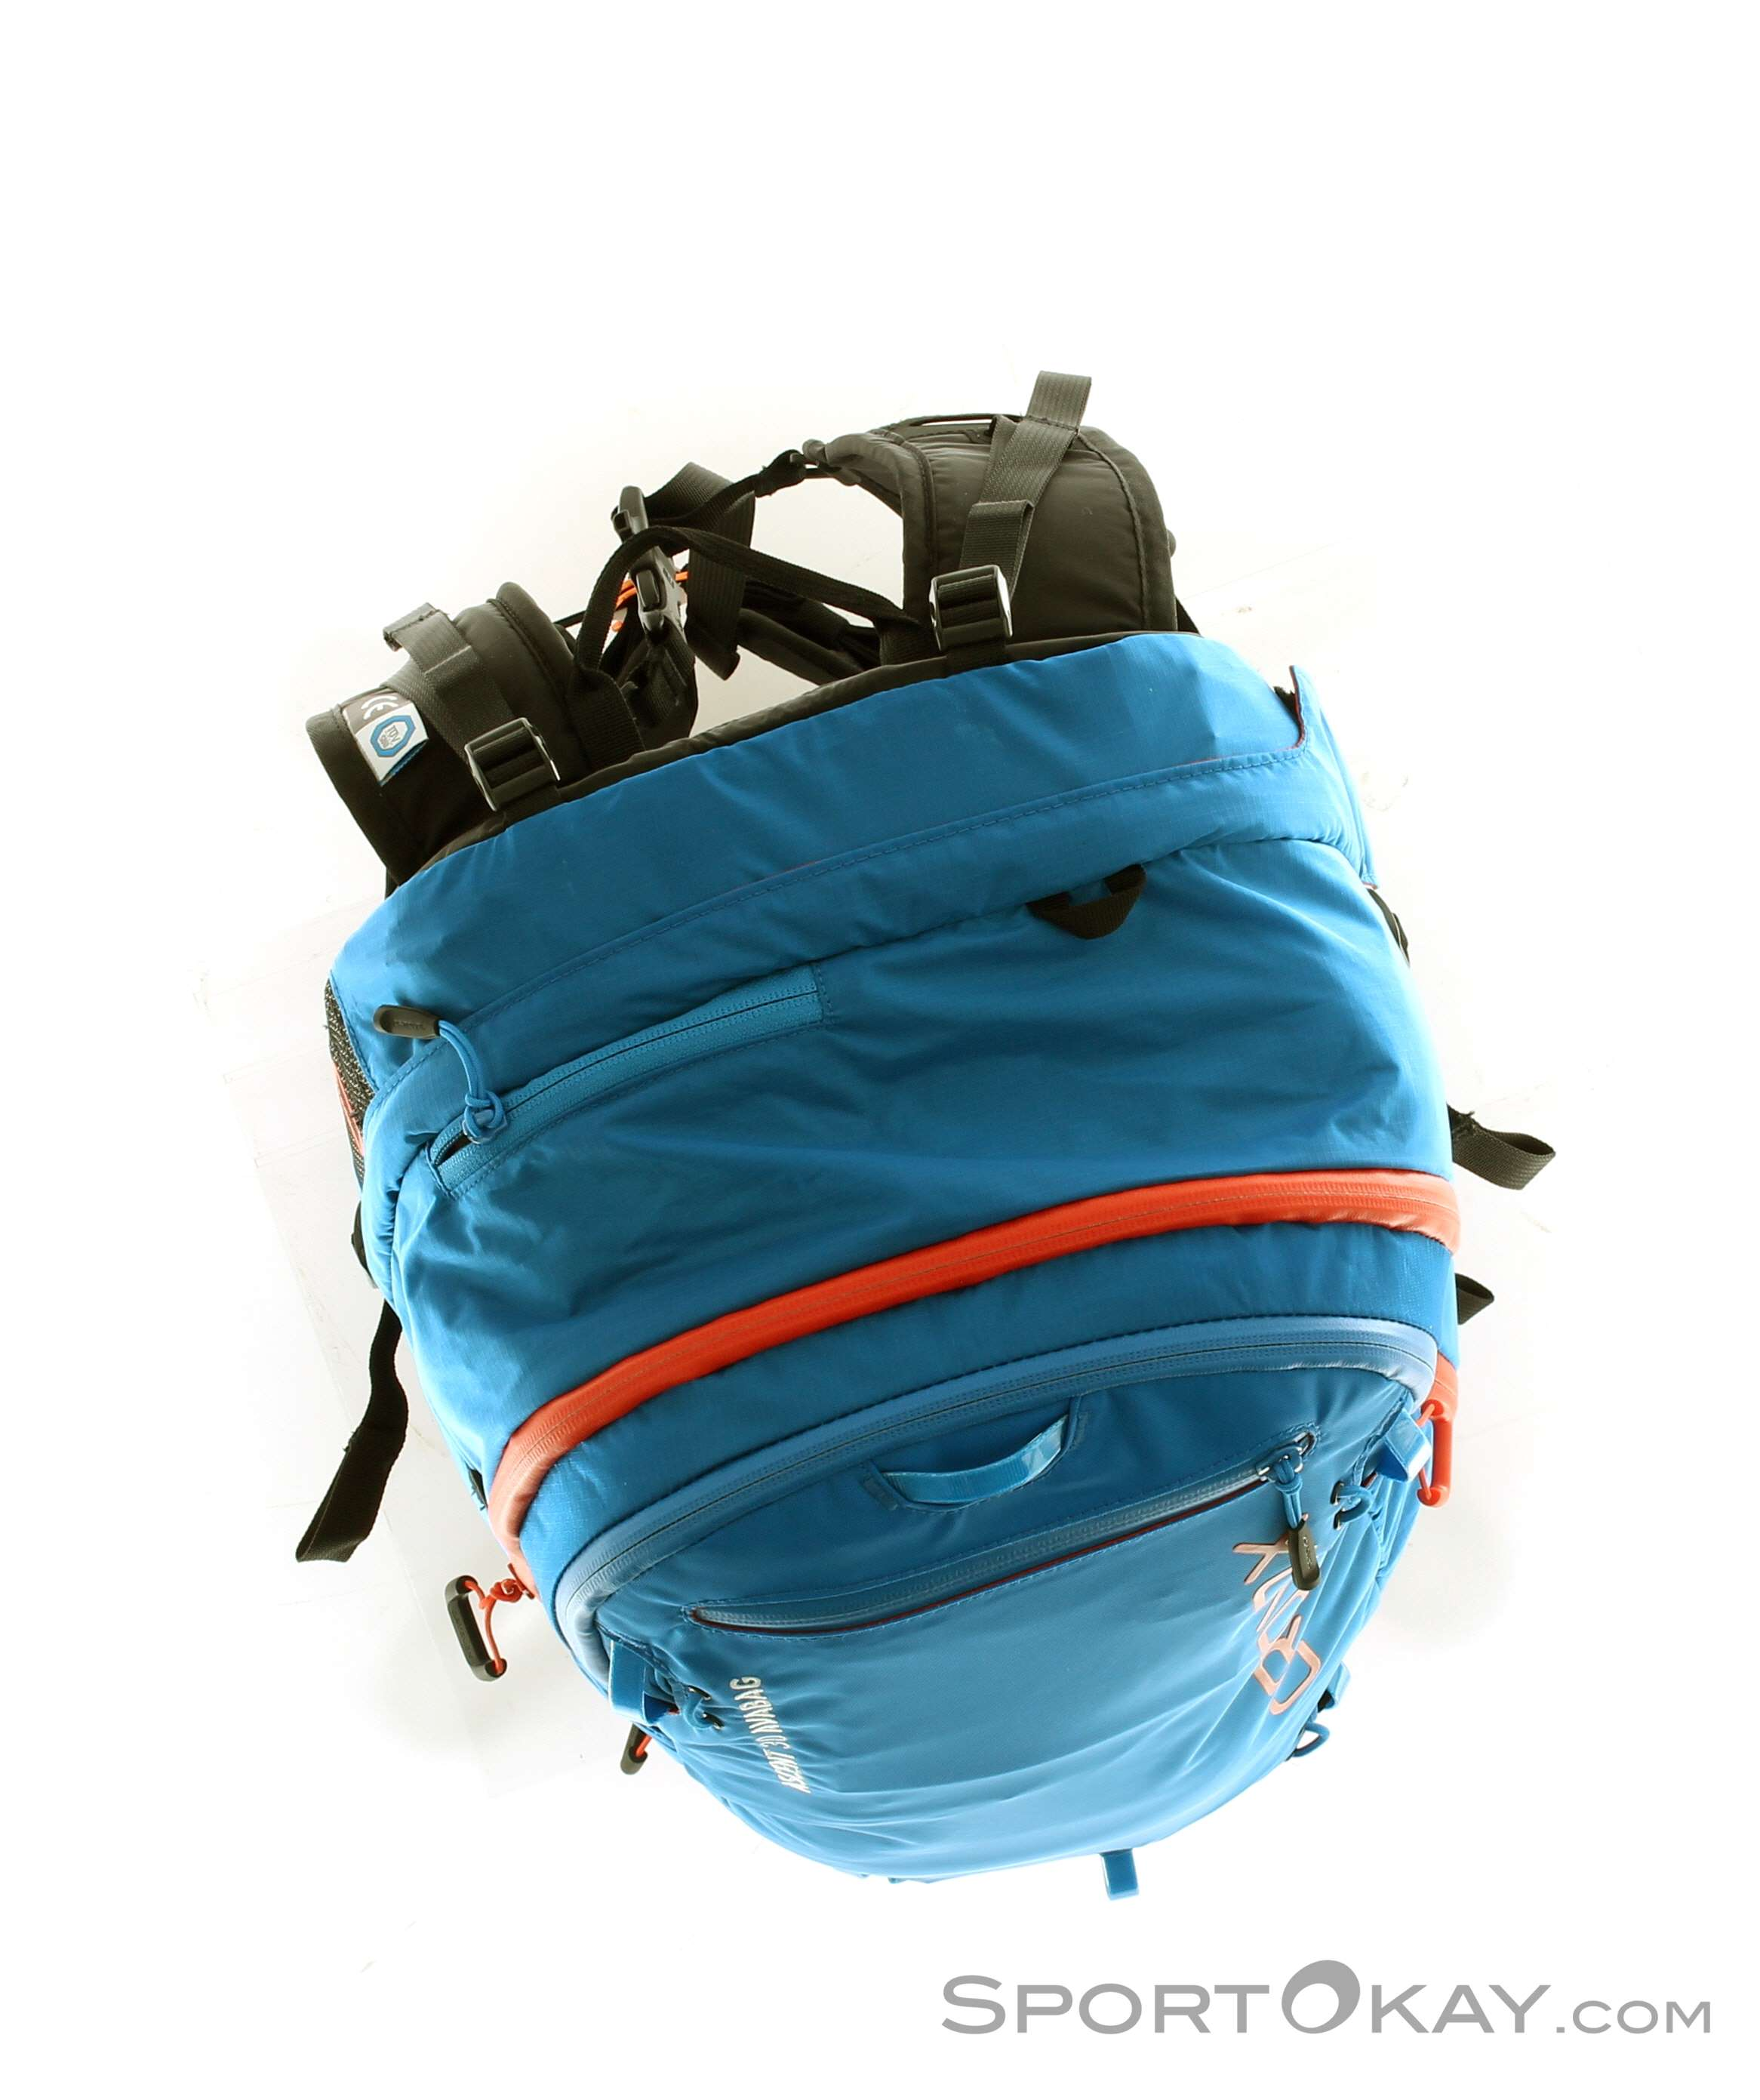 9ad55ce2a1 Ortovox Ascent 30l Avabag Airbag Backpack without Cartridge ...